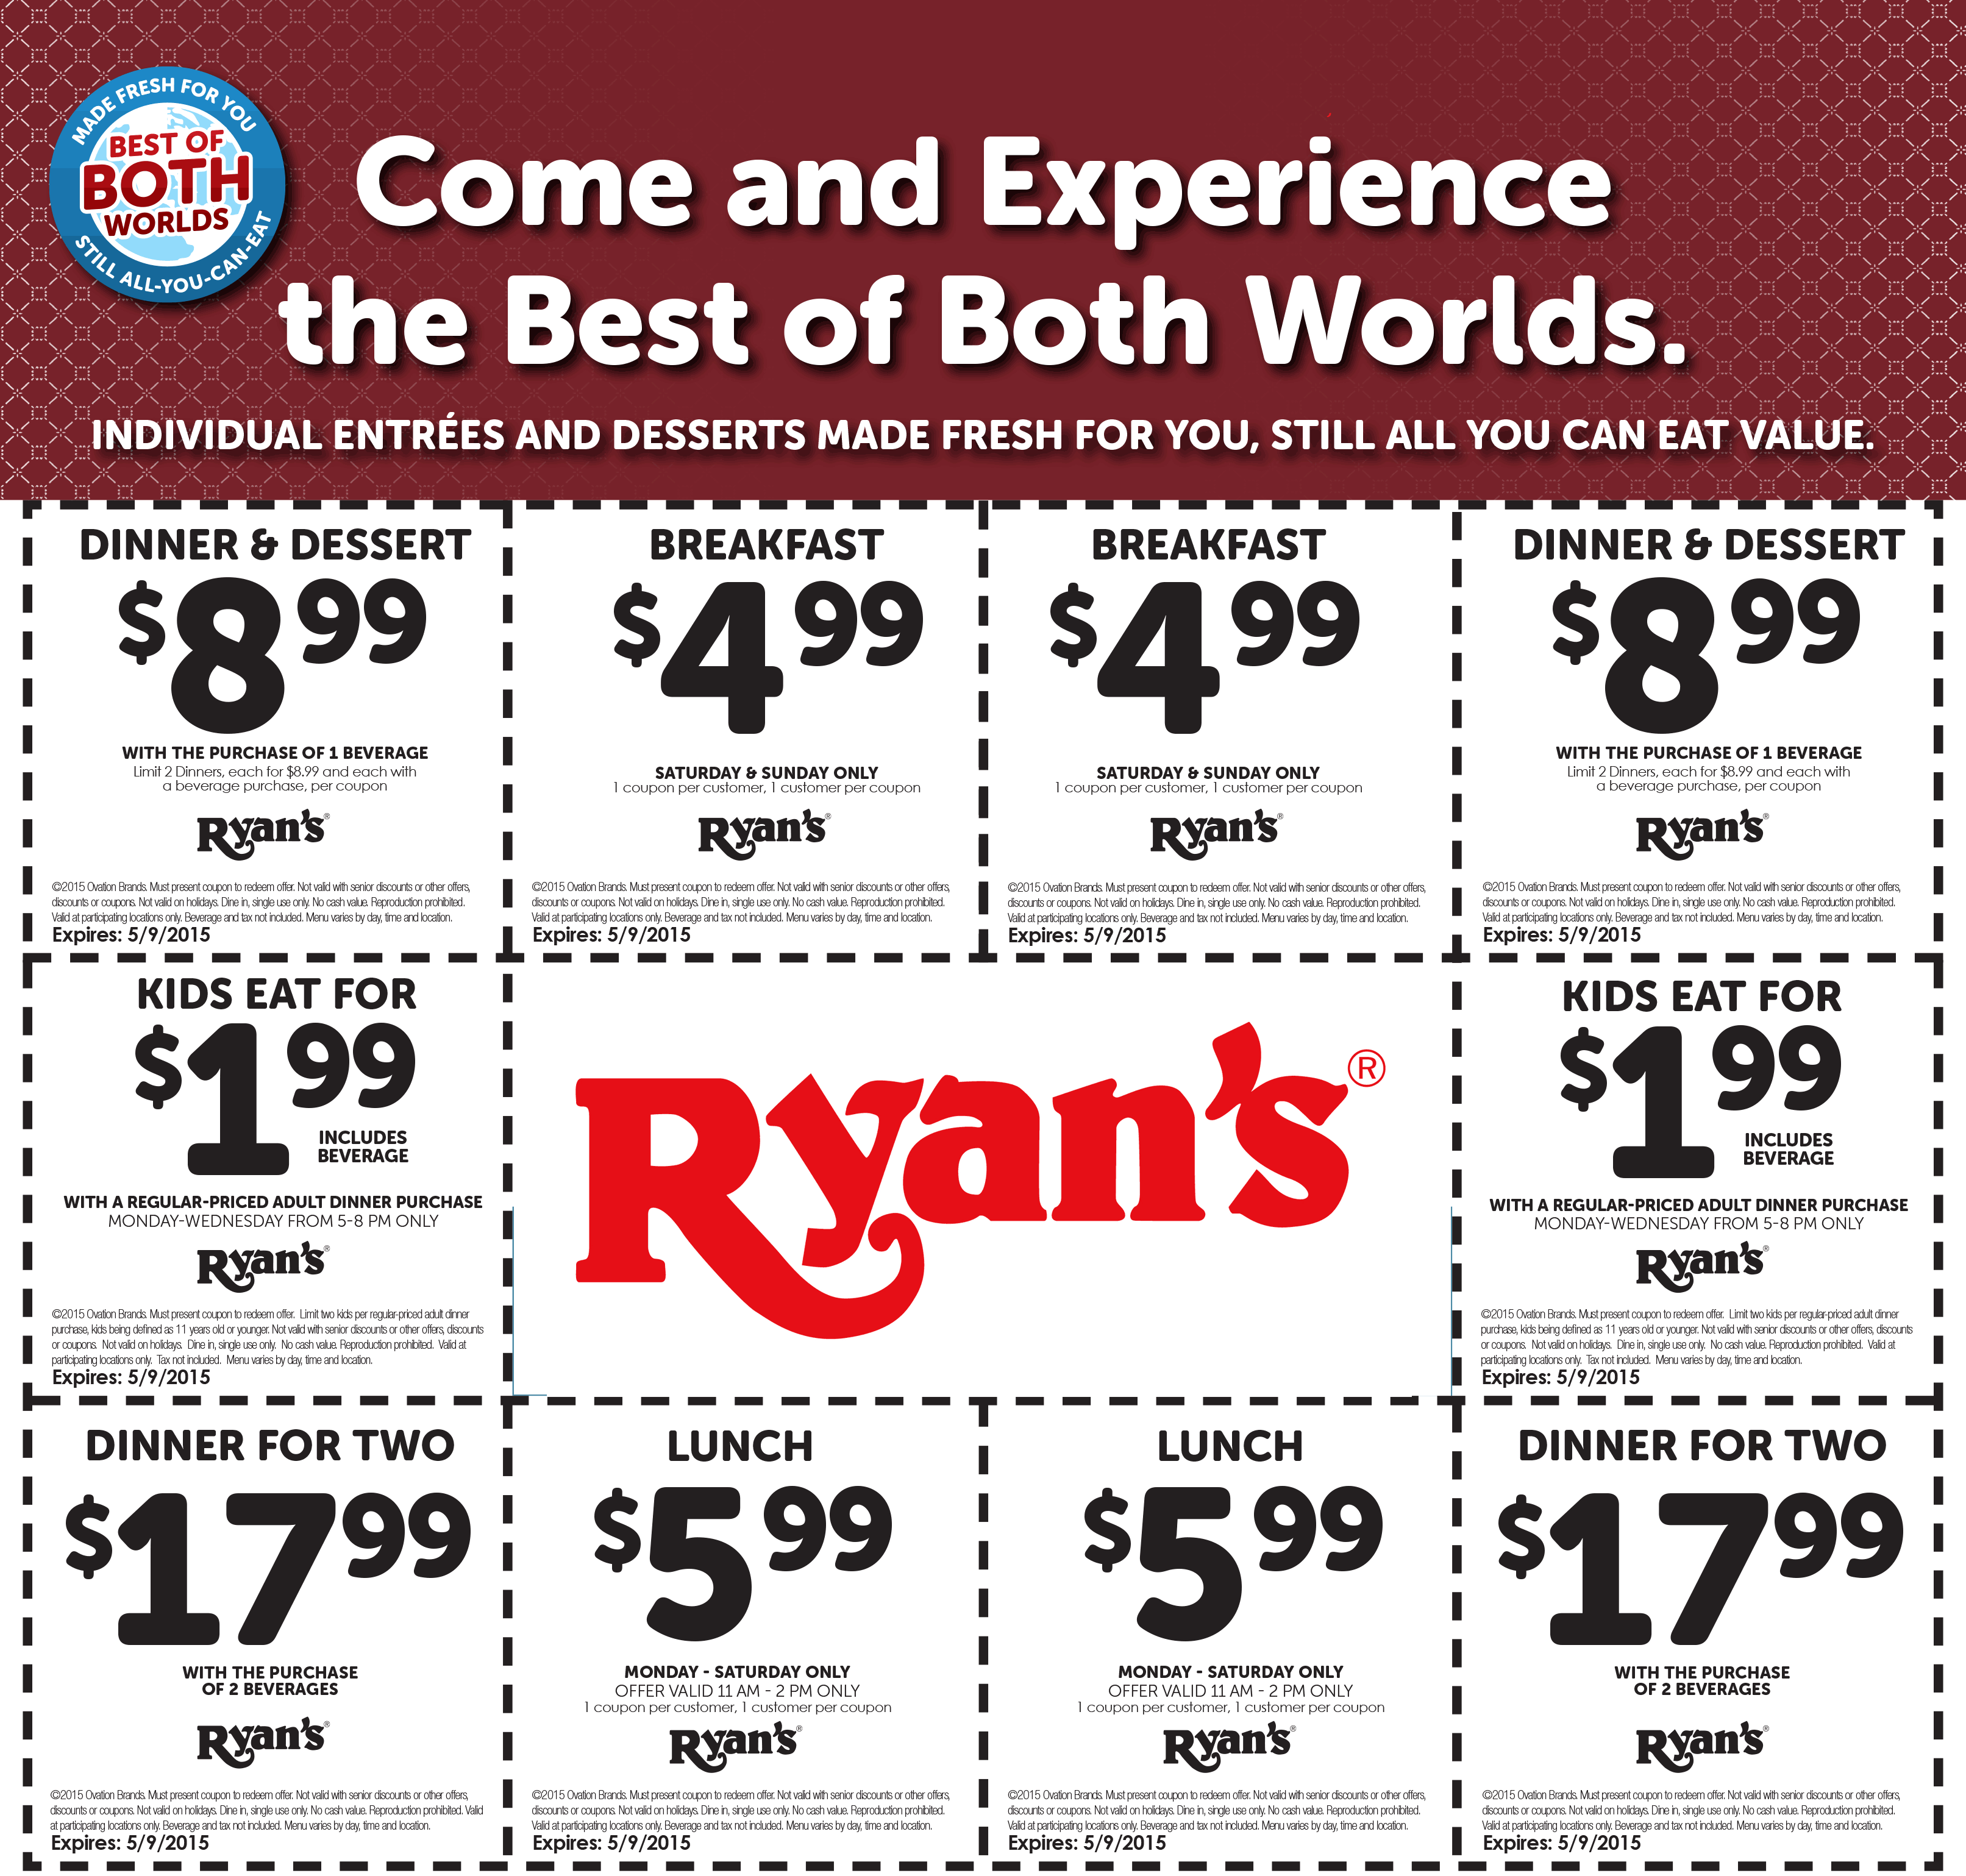 Print out coupons for Ryan's. BeFrugal updates printable coupons for Ryan's every day. Print the coupons below and take to a participating Ryan's to save.